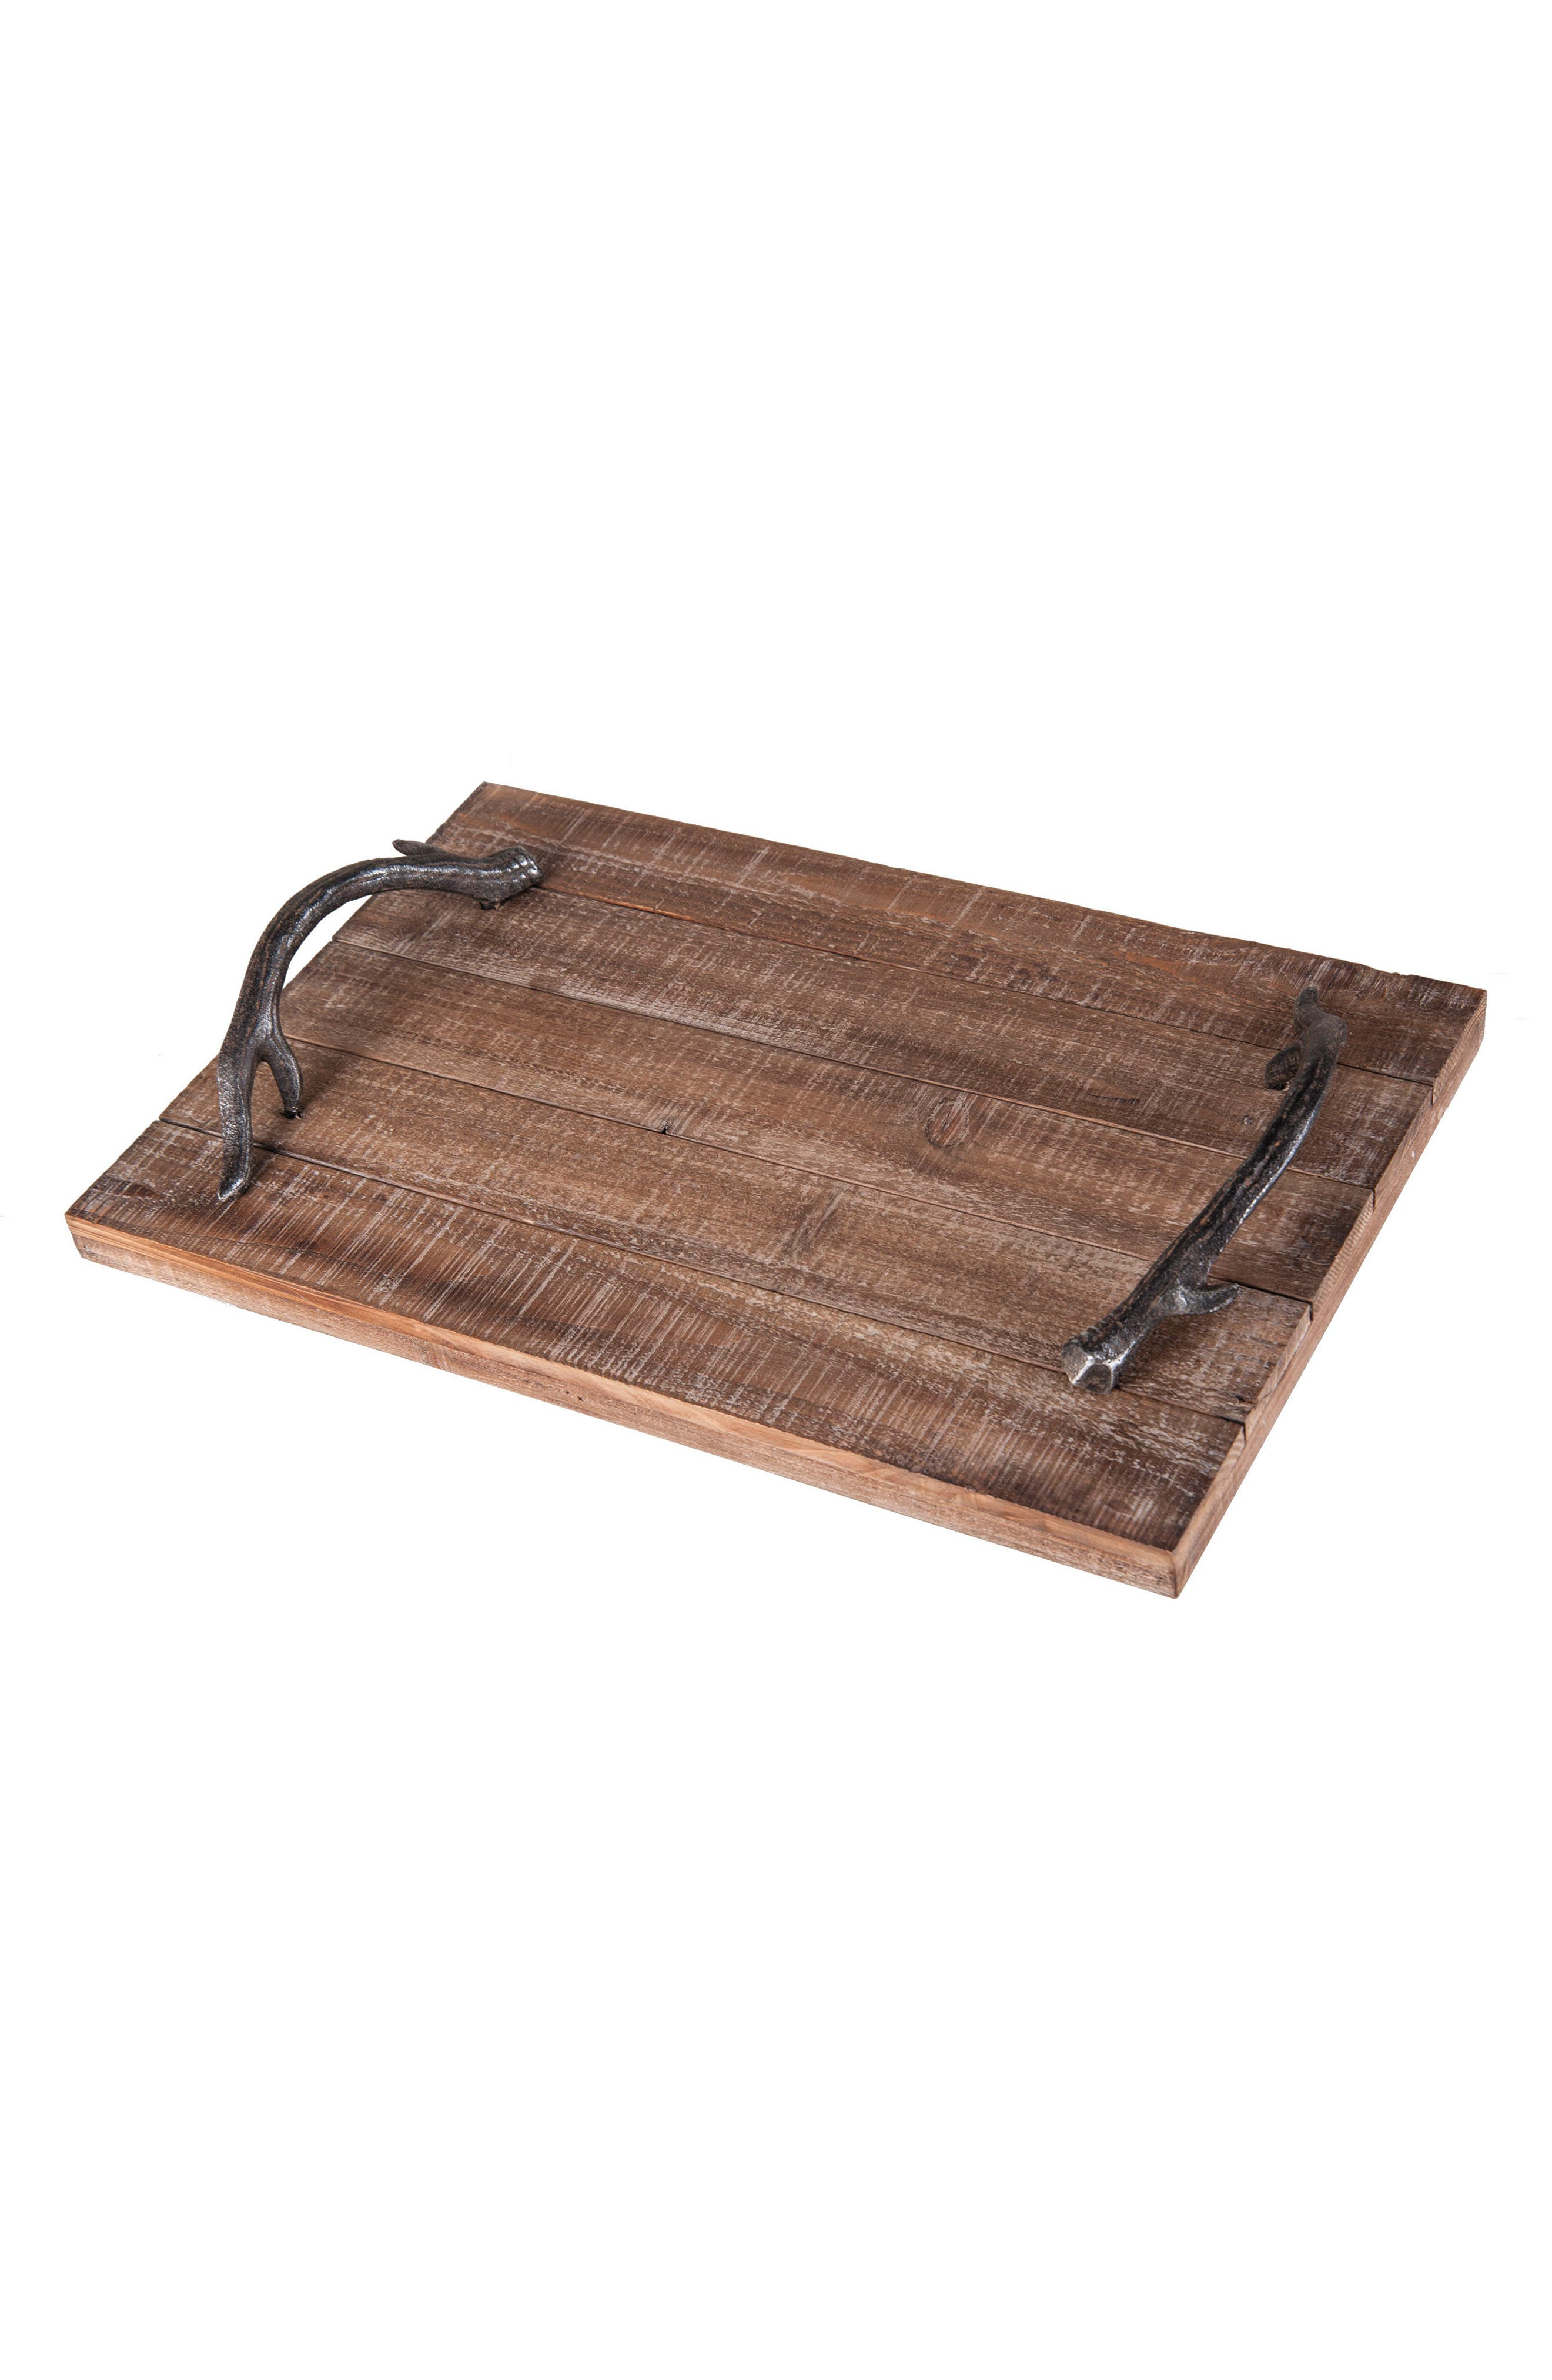 Main Image - Foreside Wood Tray